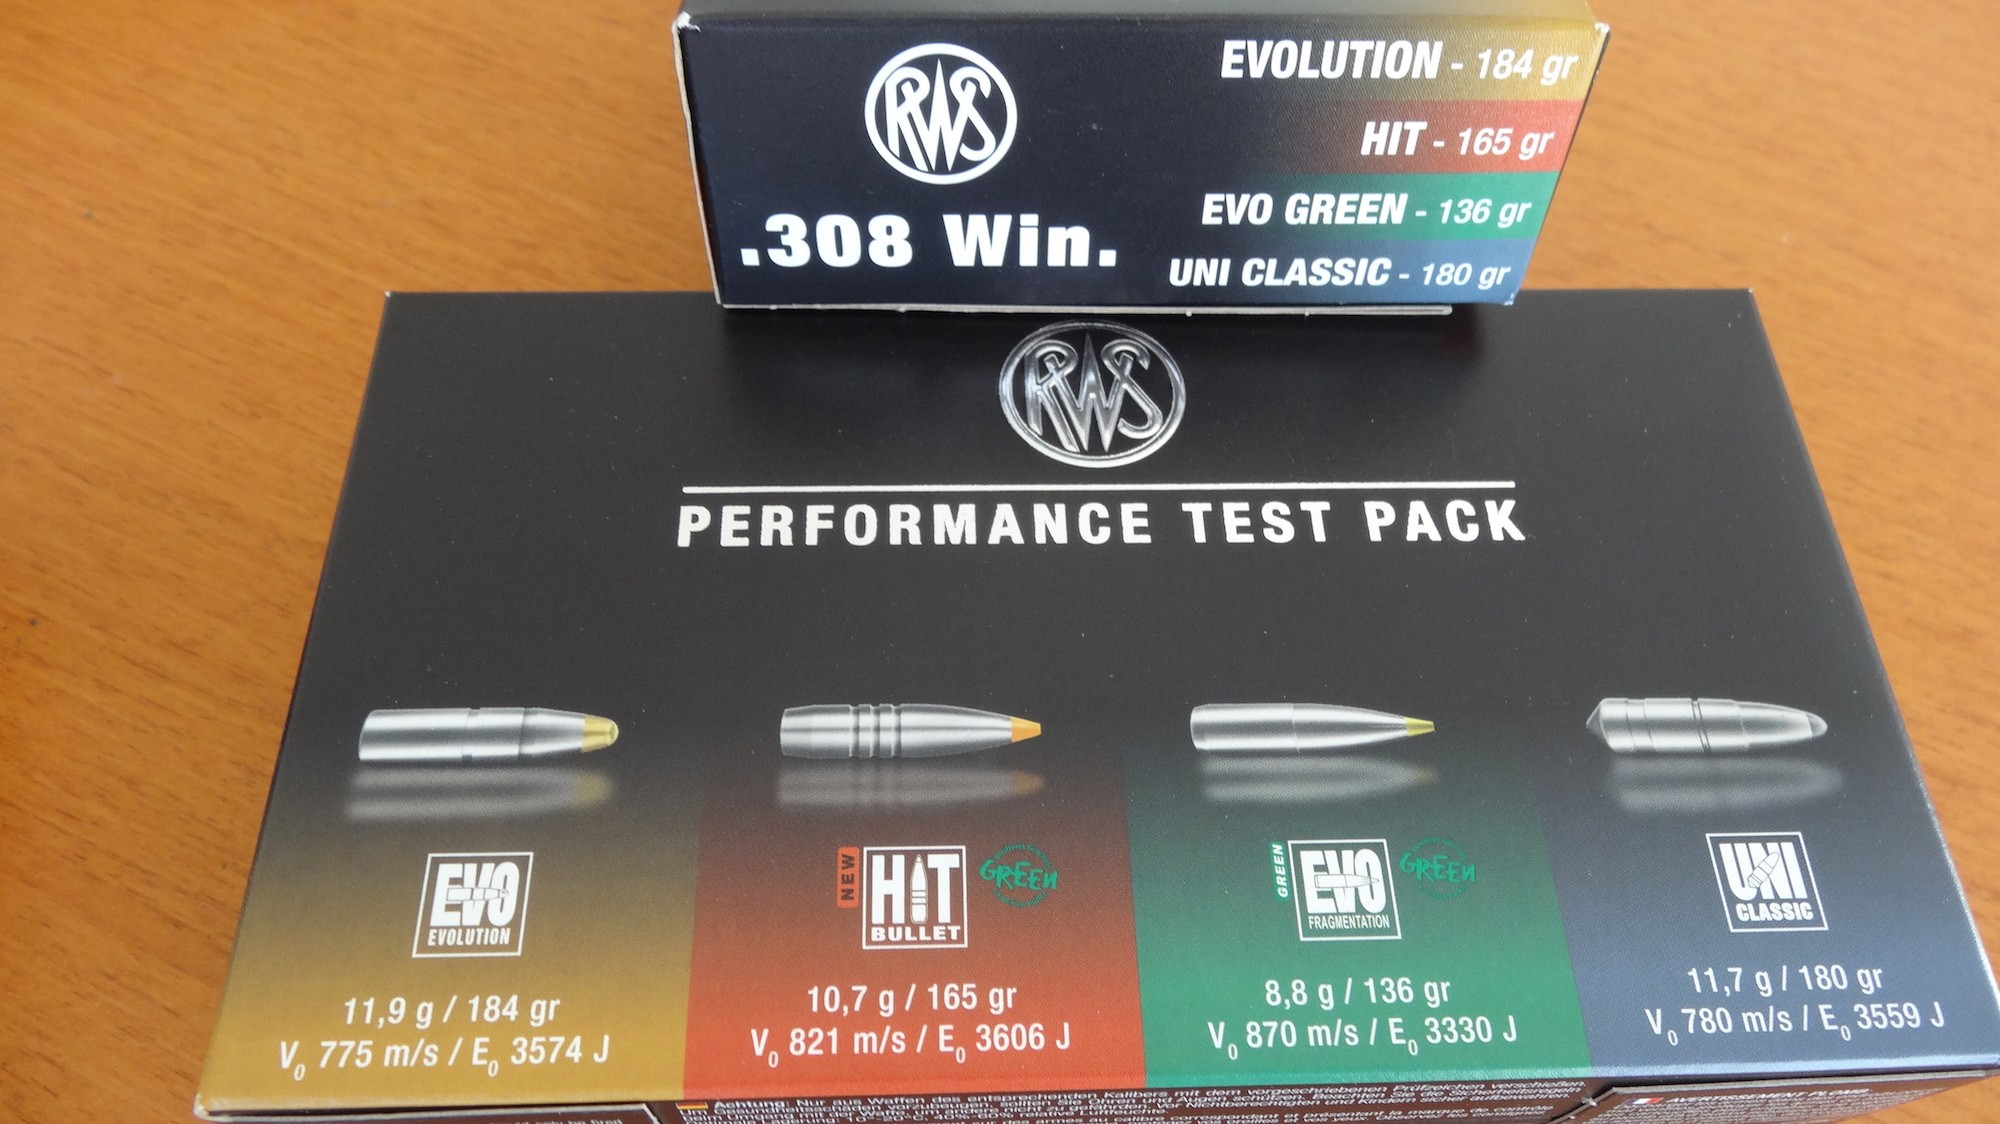 RWS Performance Test Pack Cal. 308 Win.